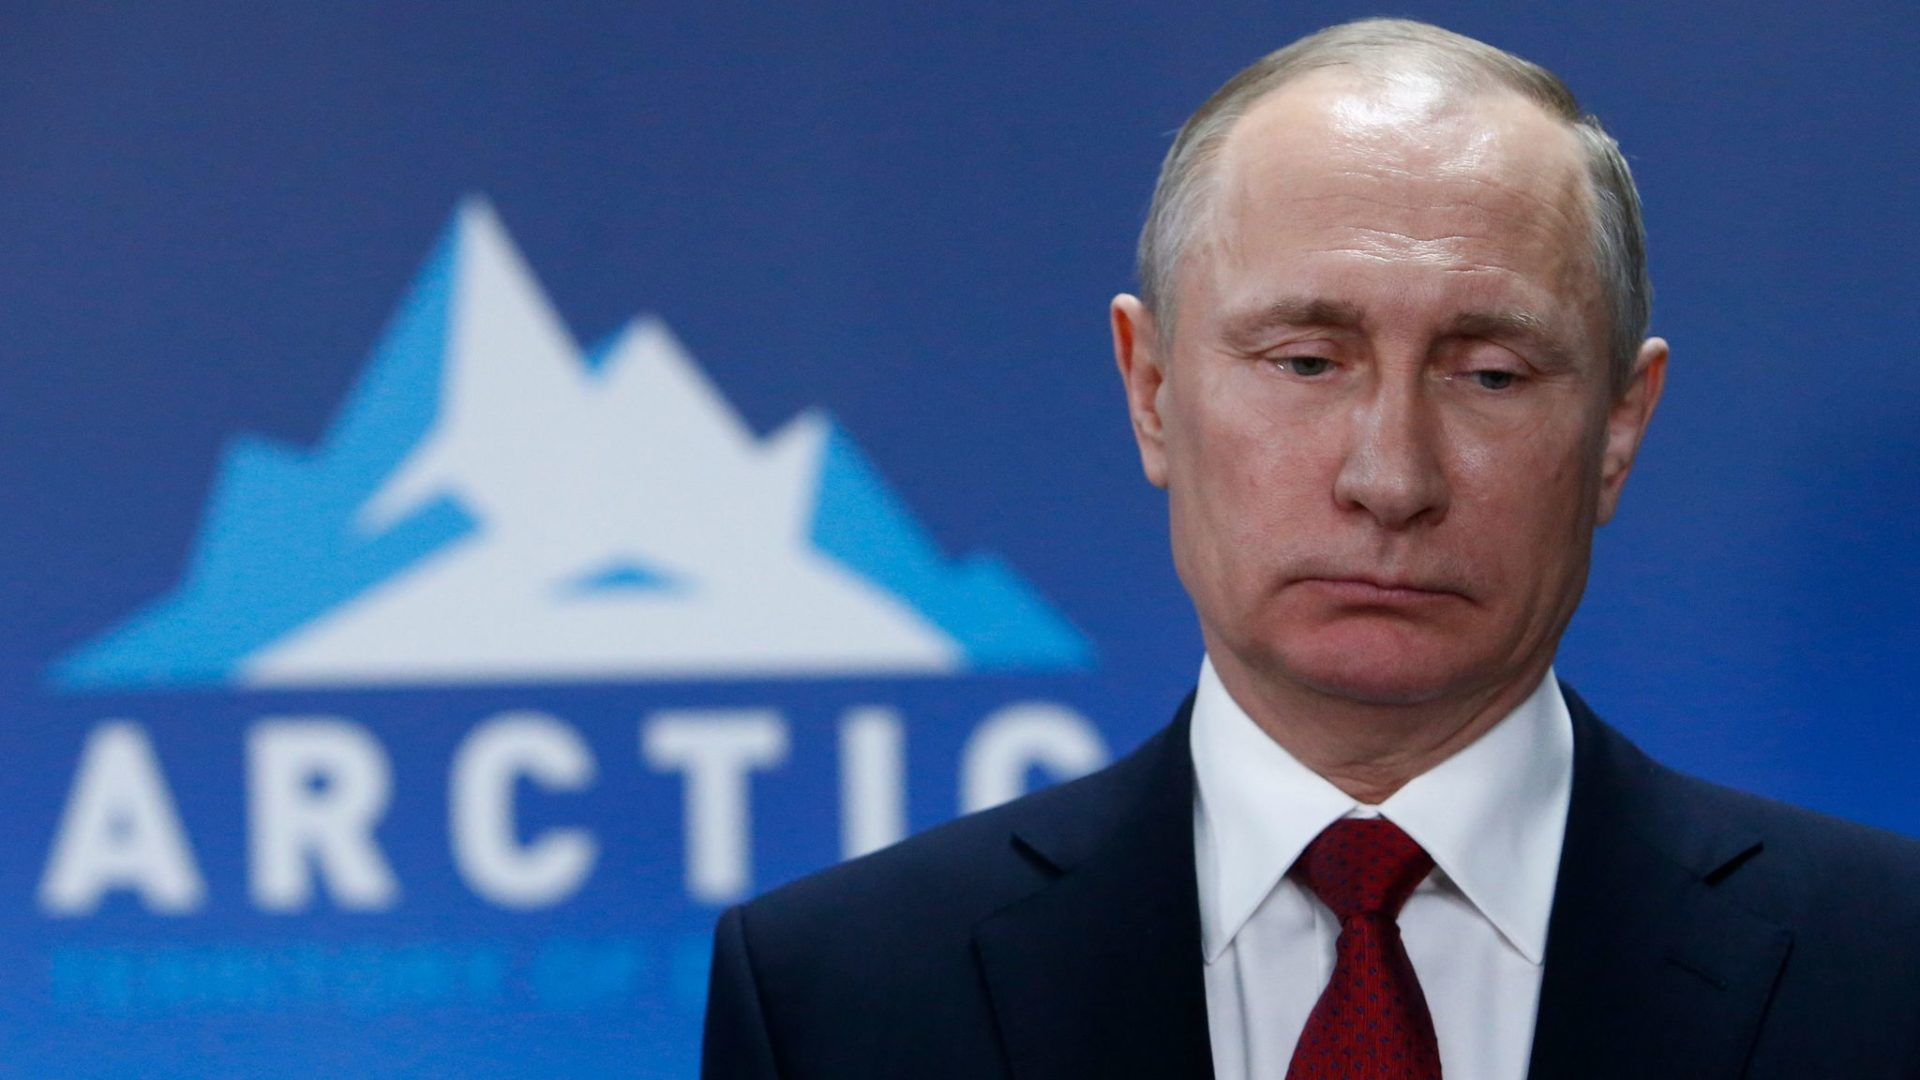 In joint statement world leaders agree Russia behind nerve agent attack on former spy